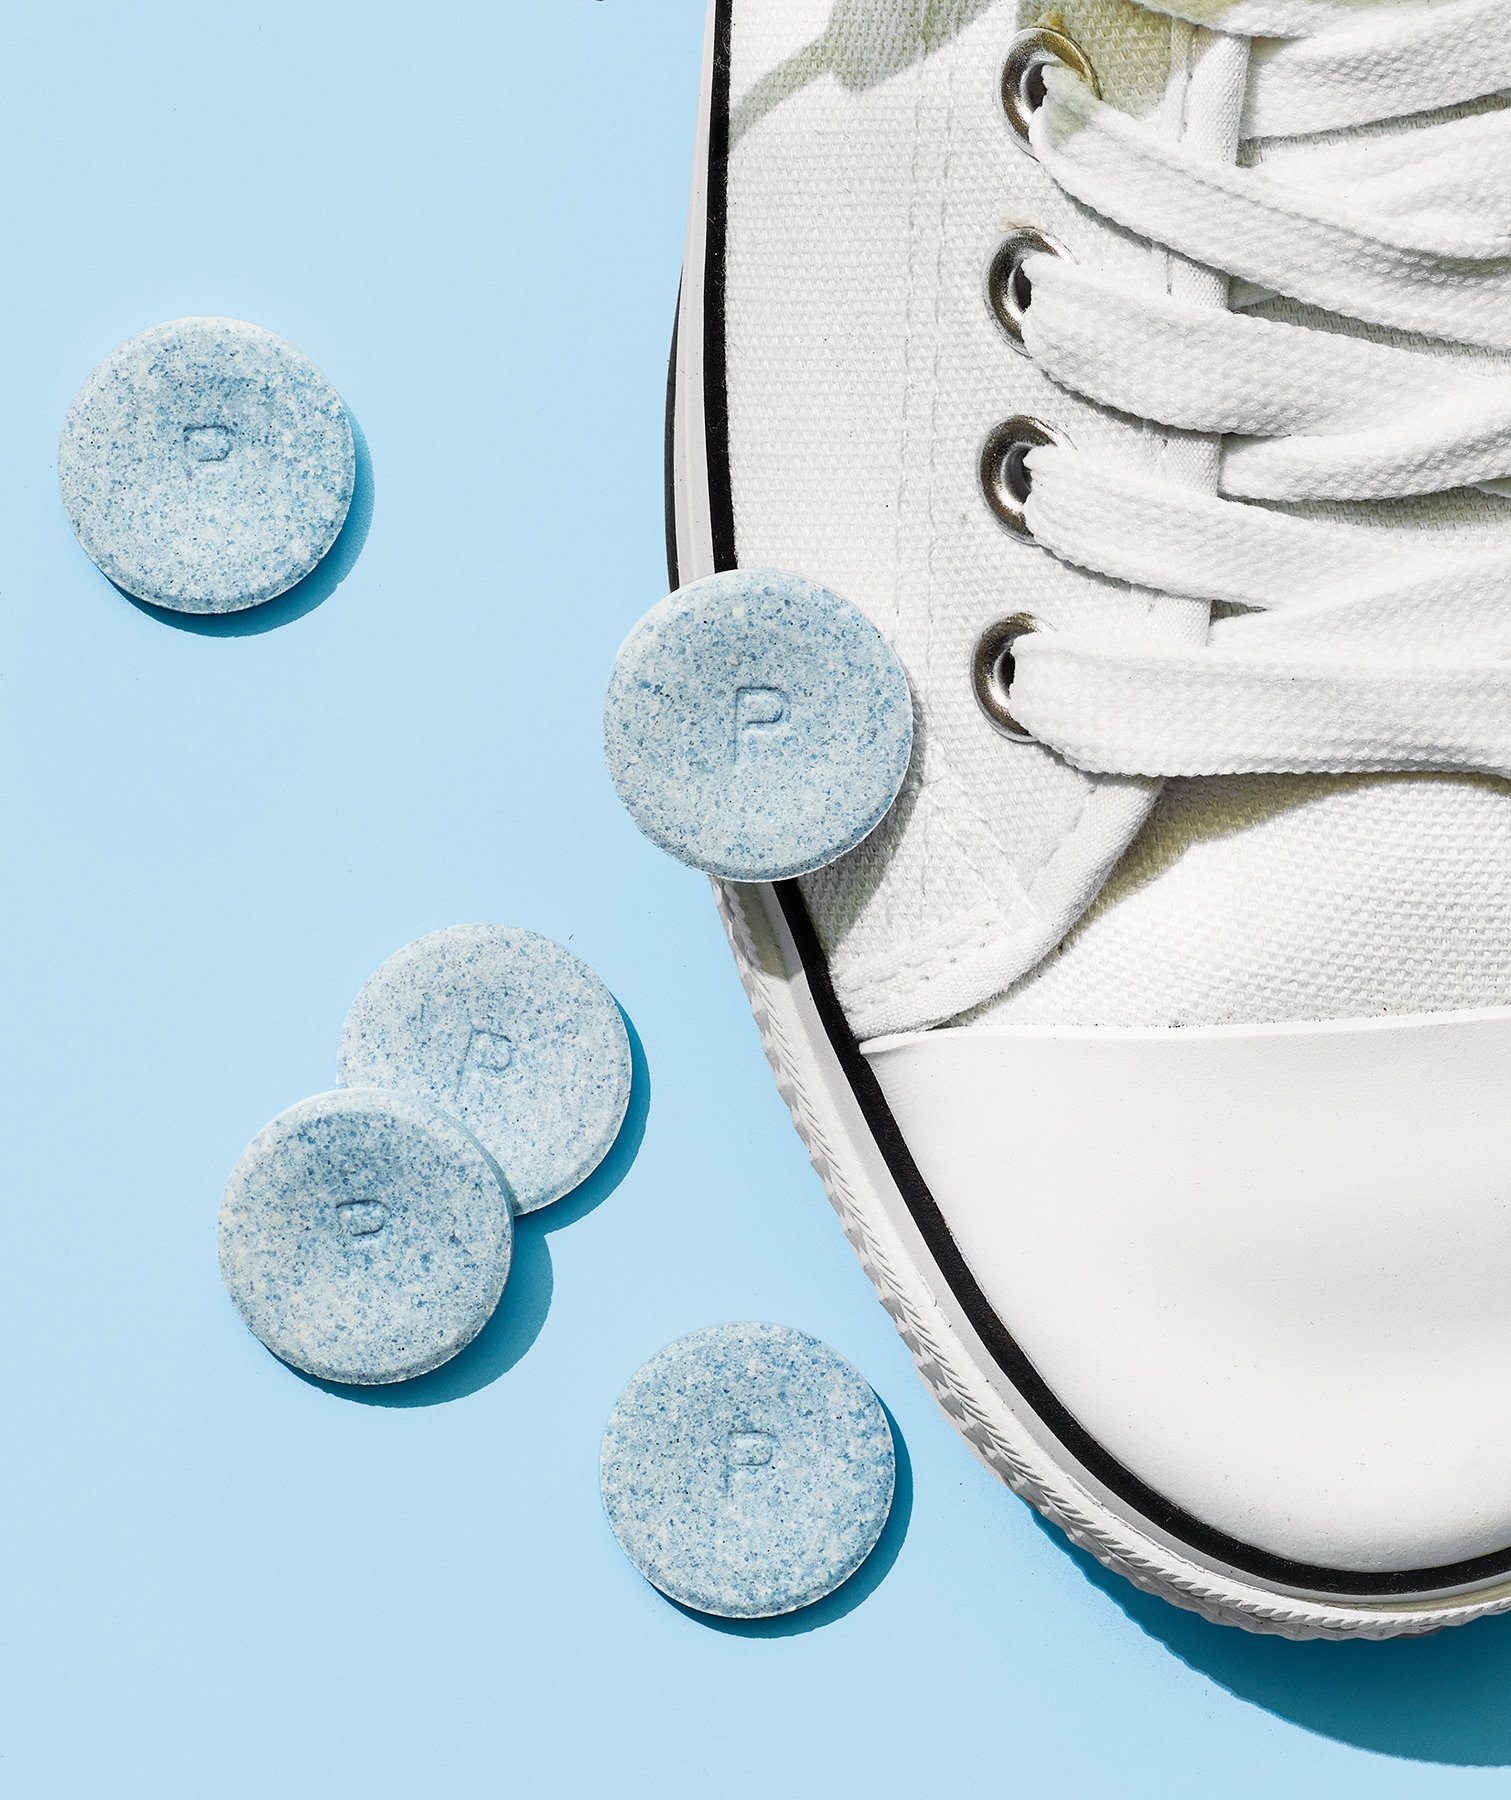 5 Things You Didn't Know Denture Tablets Could Clean